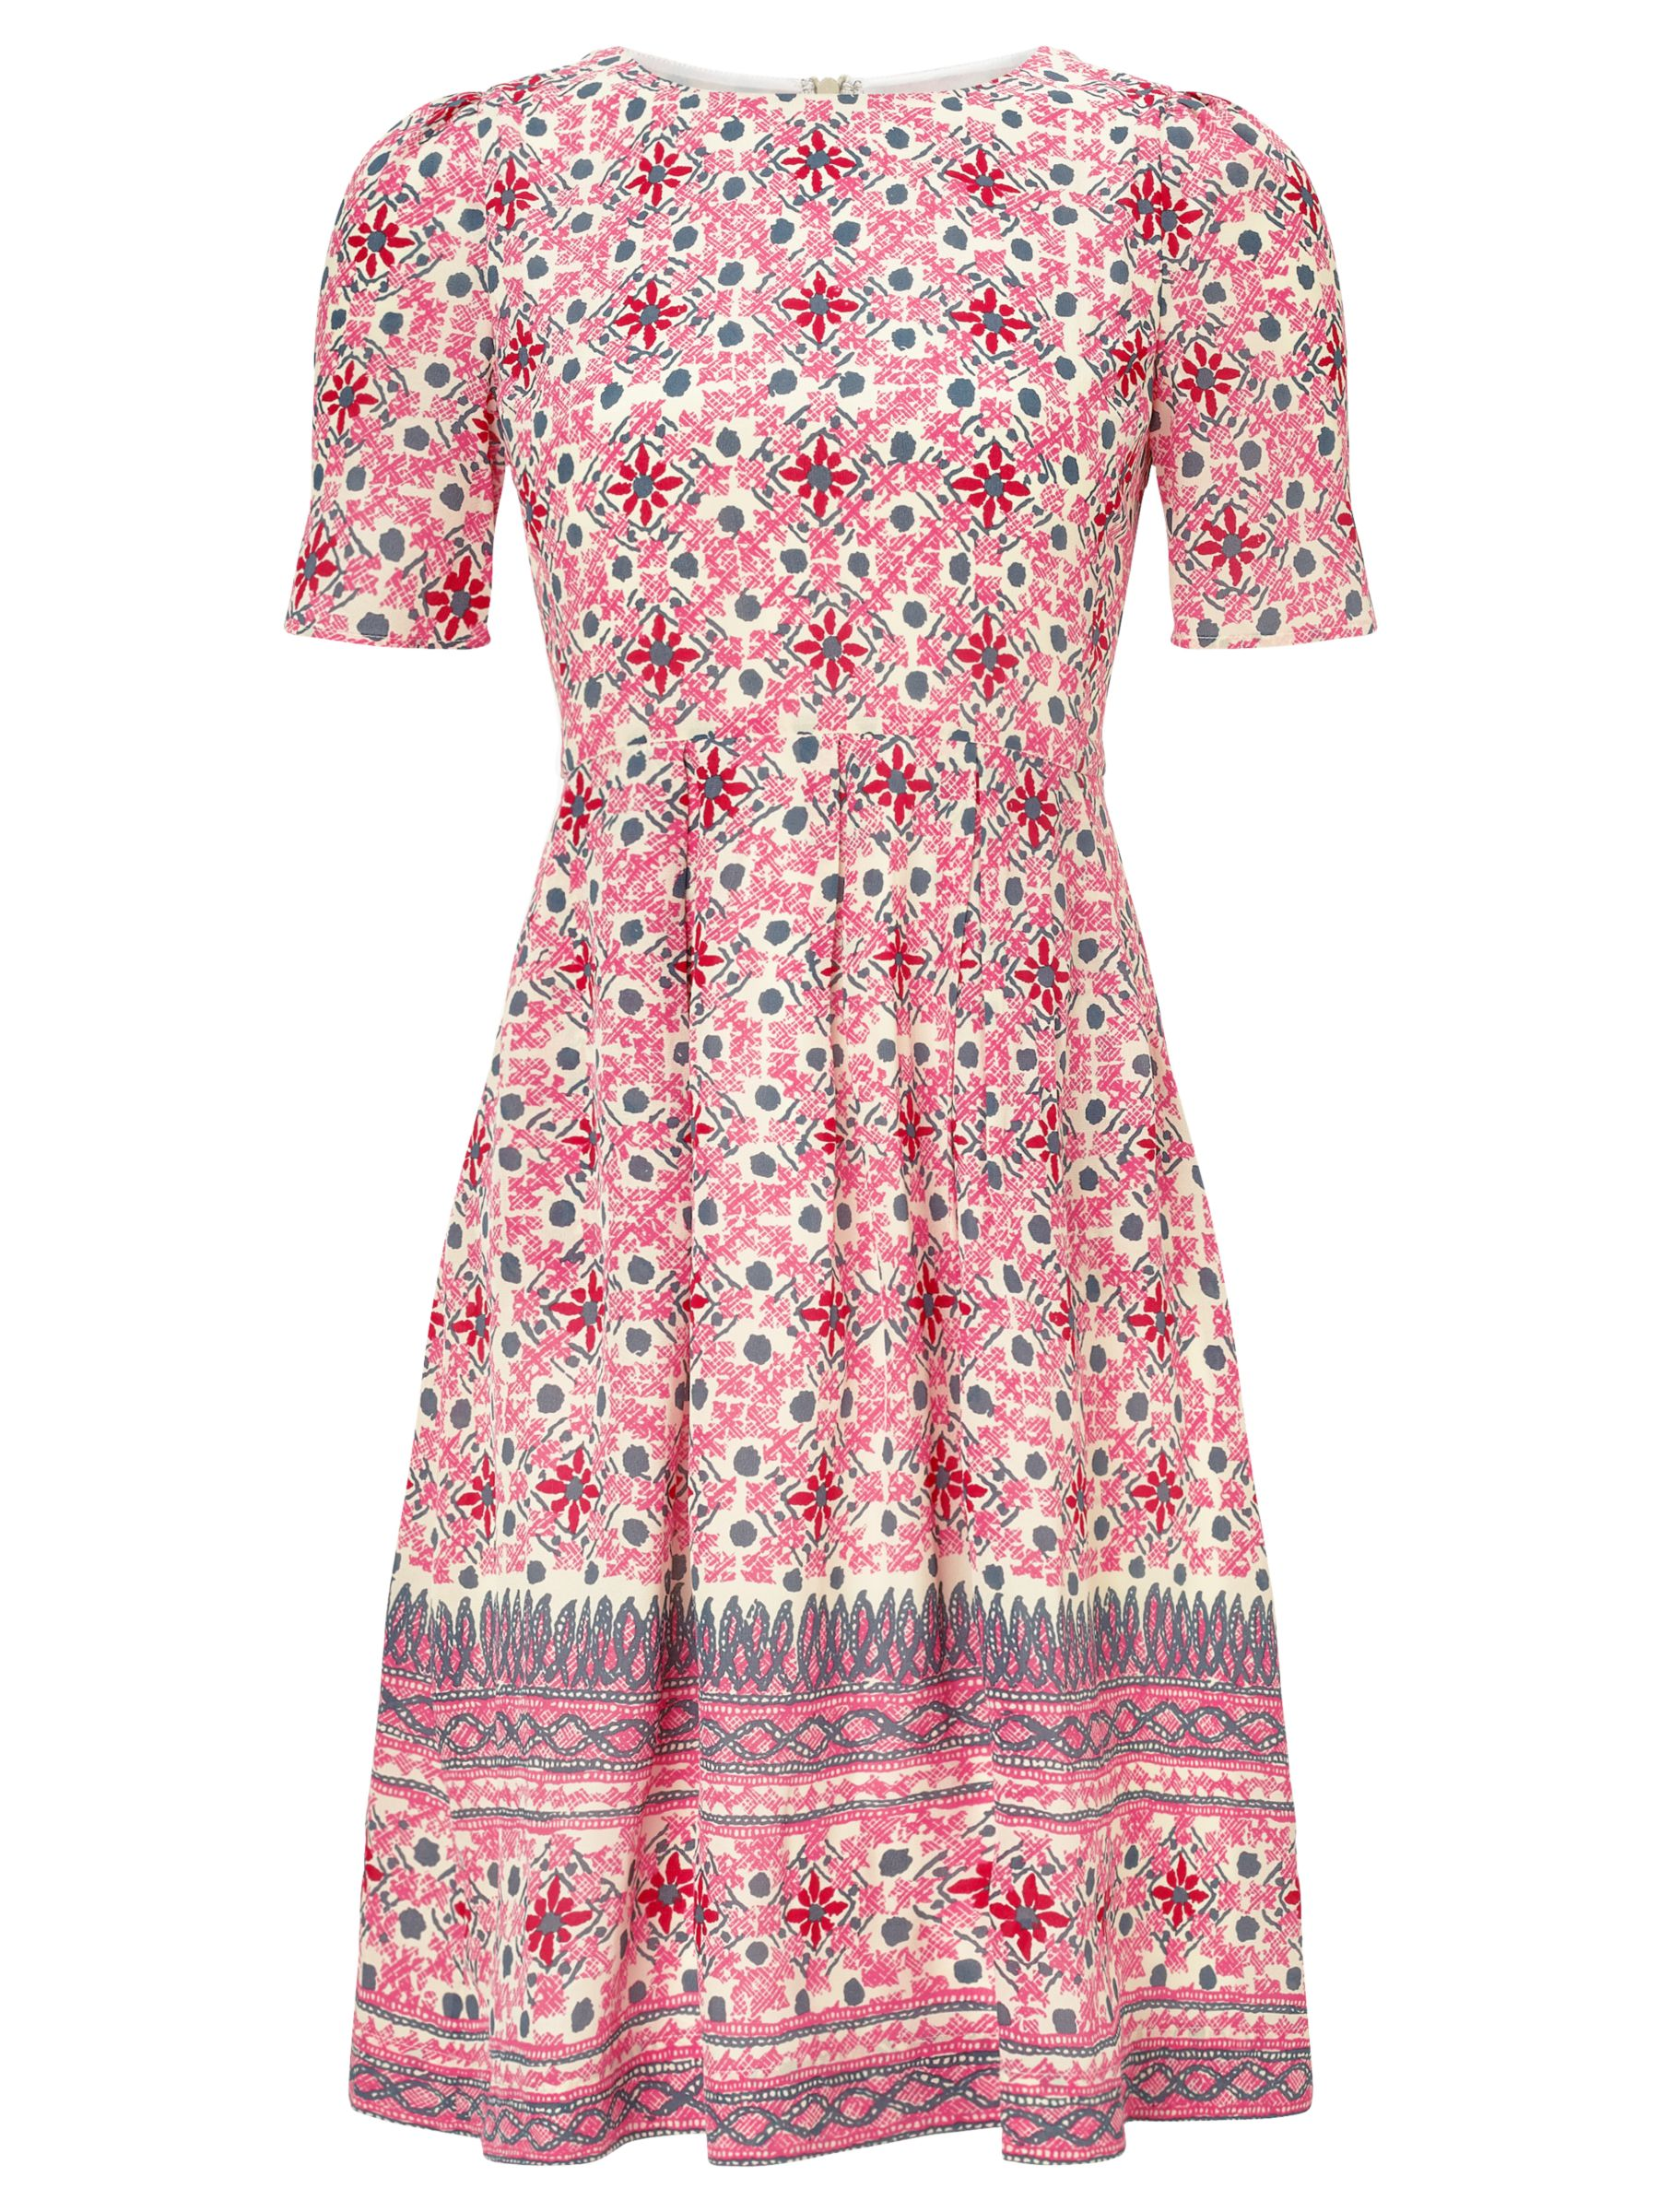 somerset by alice temperley mexican border silk dress pink, somerset, alice, temperley, mexican, border, silk, dress, pink, somerset by alice temperley, 6|12|16|18|8|14|10, women, womens dresses, new in clothing, fashion magazine, brands l-z, 1927928